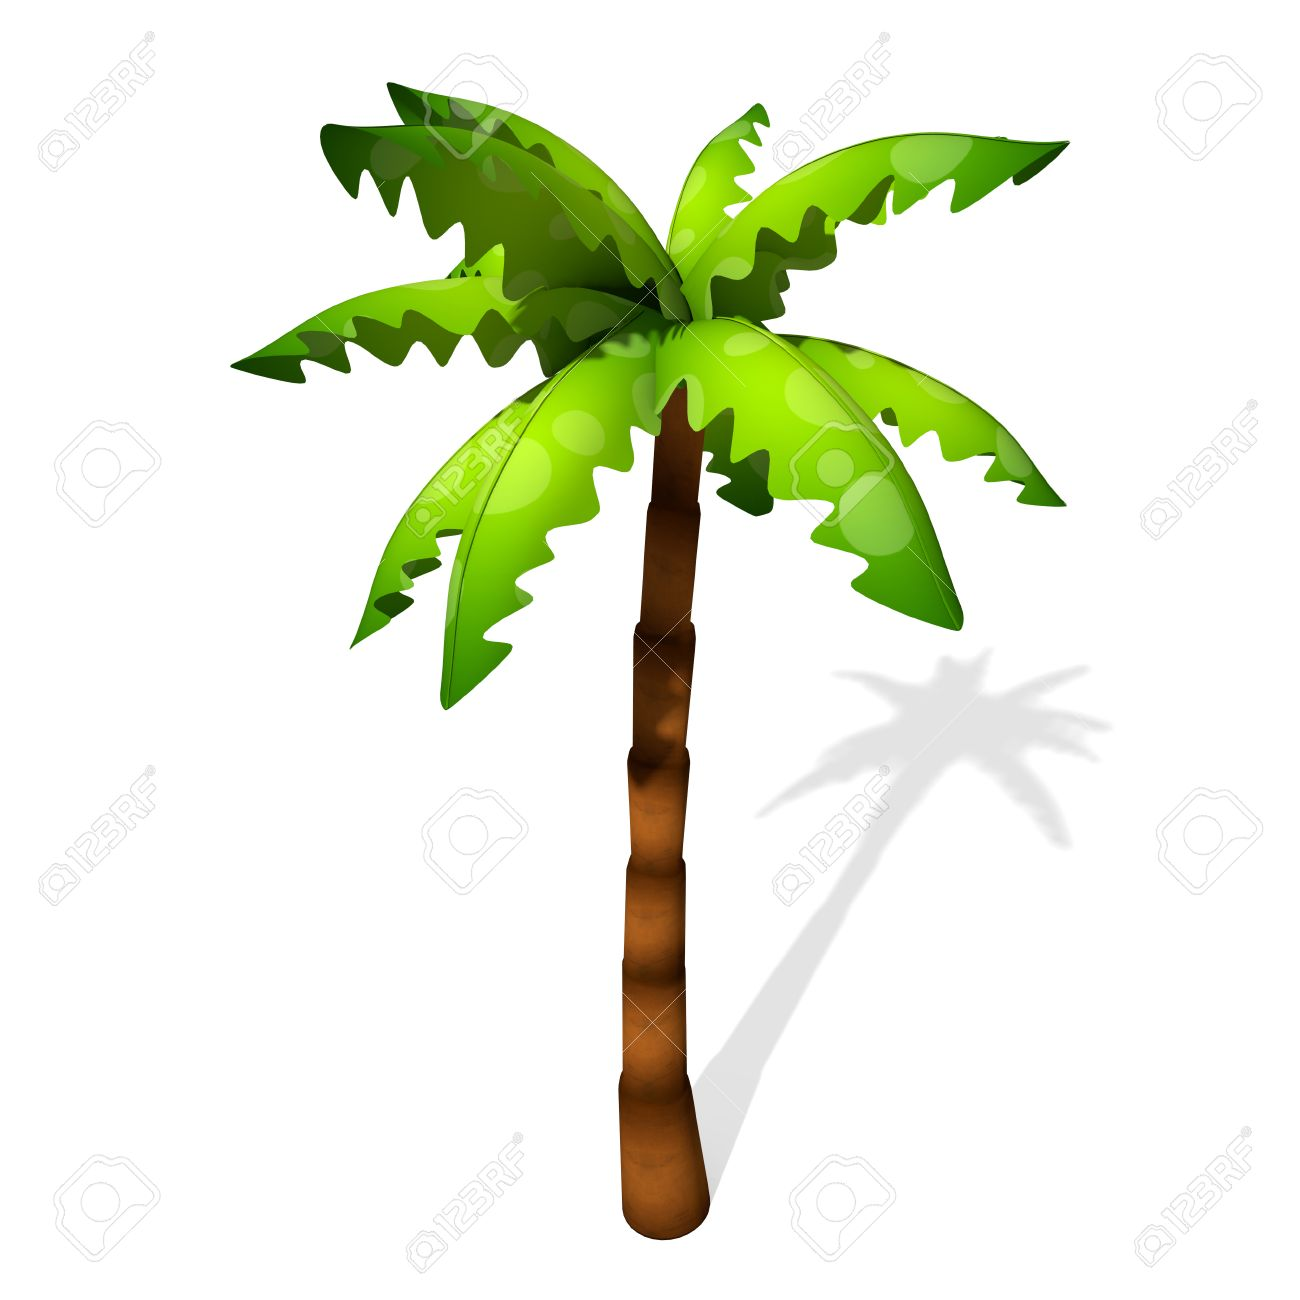 Palm Tree Cartoon Image